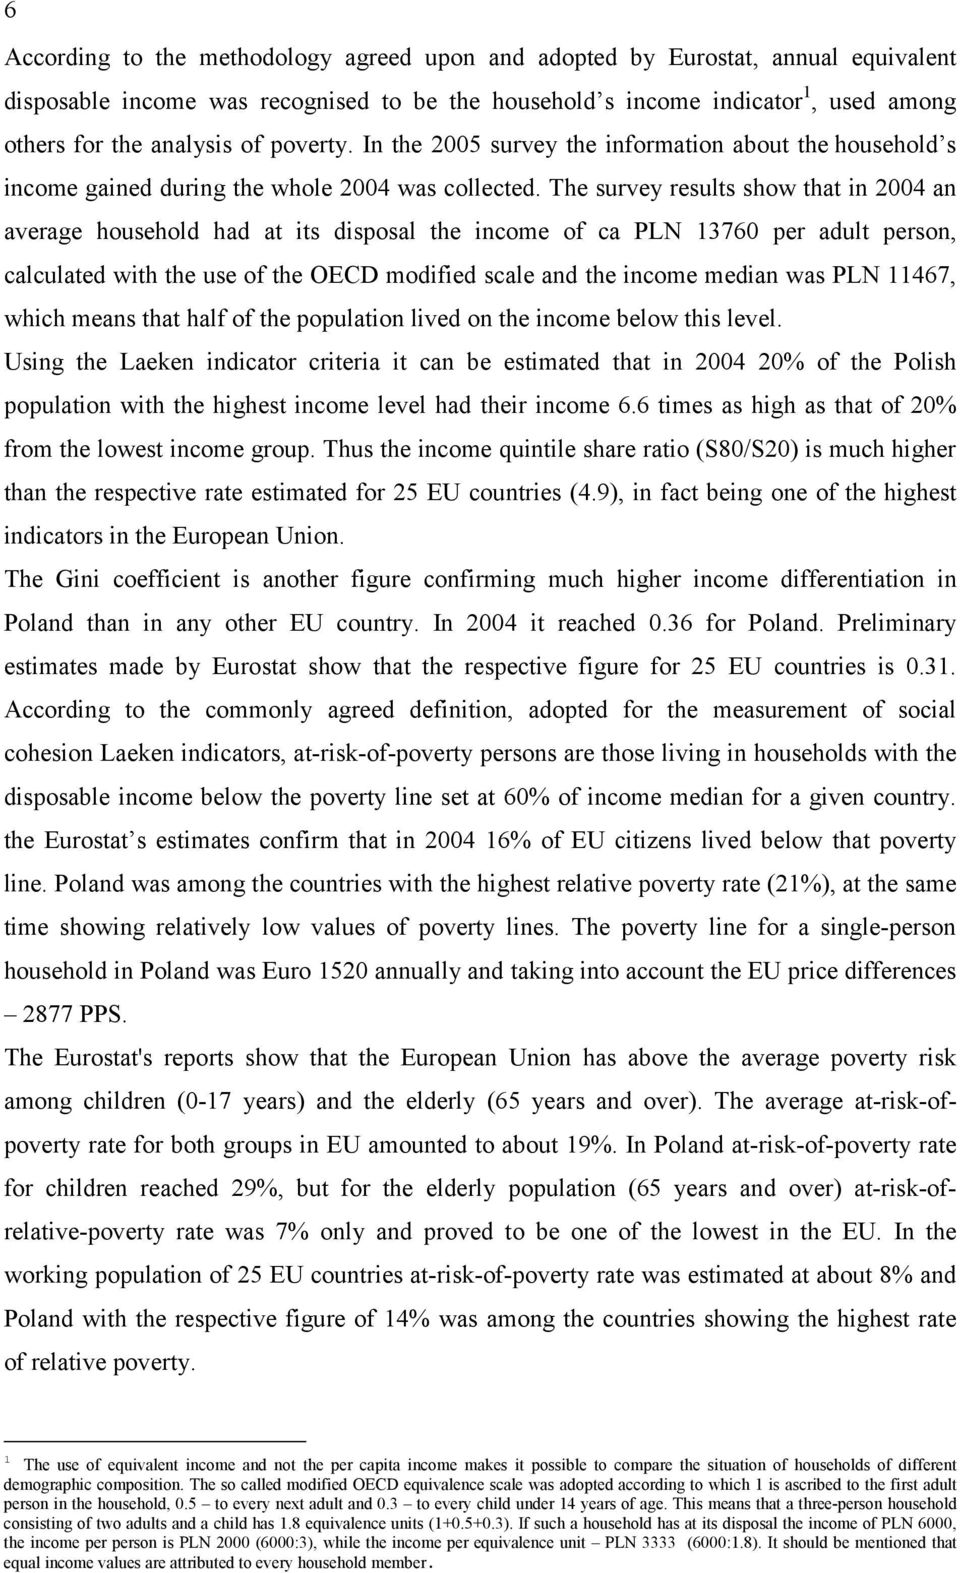 The survey results show that in 2004 an average household had at its disposal the income of ca PLN 13760 per adult person, calculated with the use of the OECD modified scale and the income median was